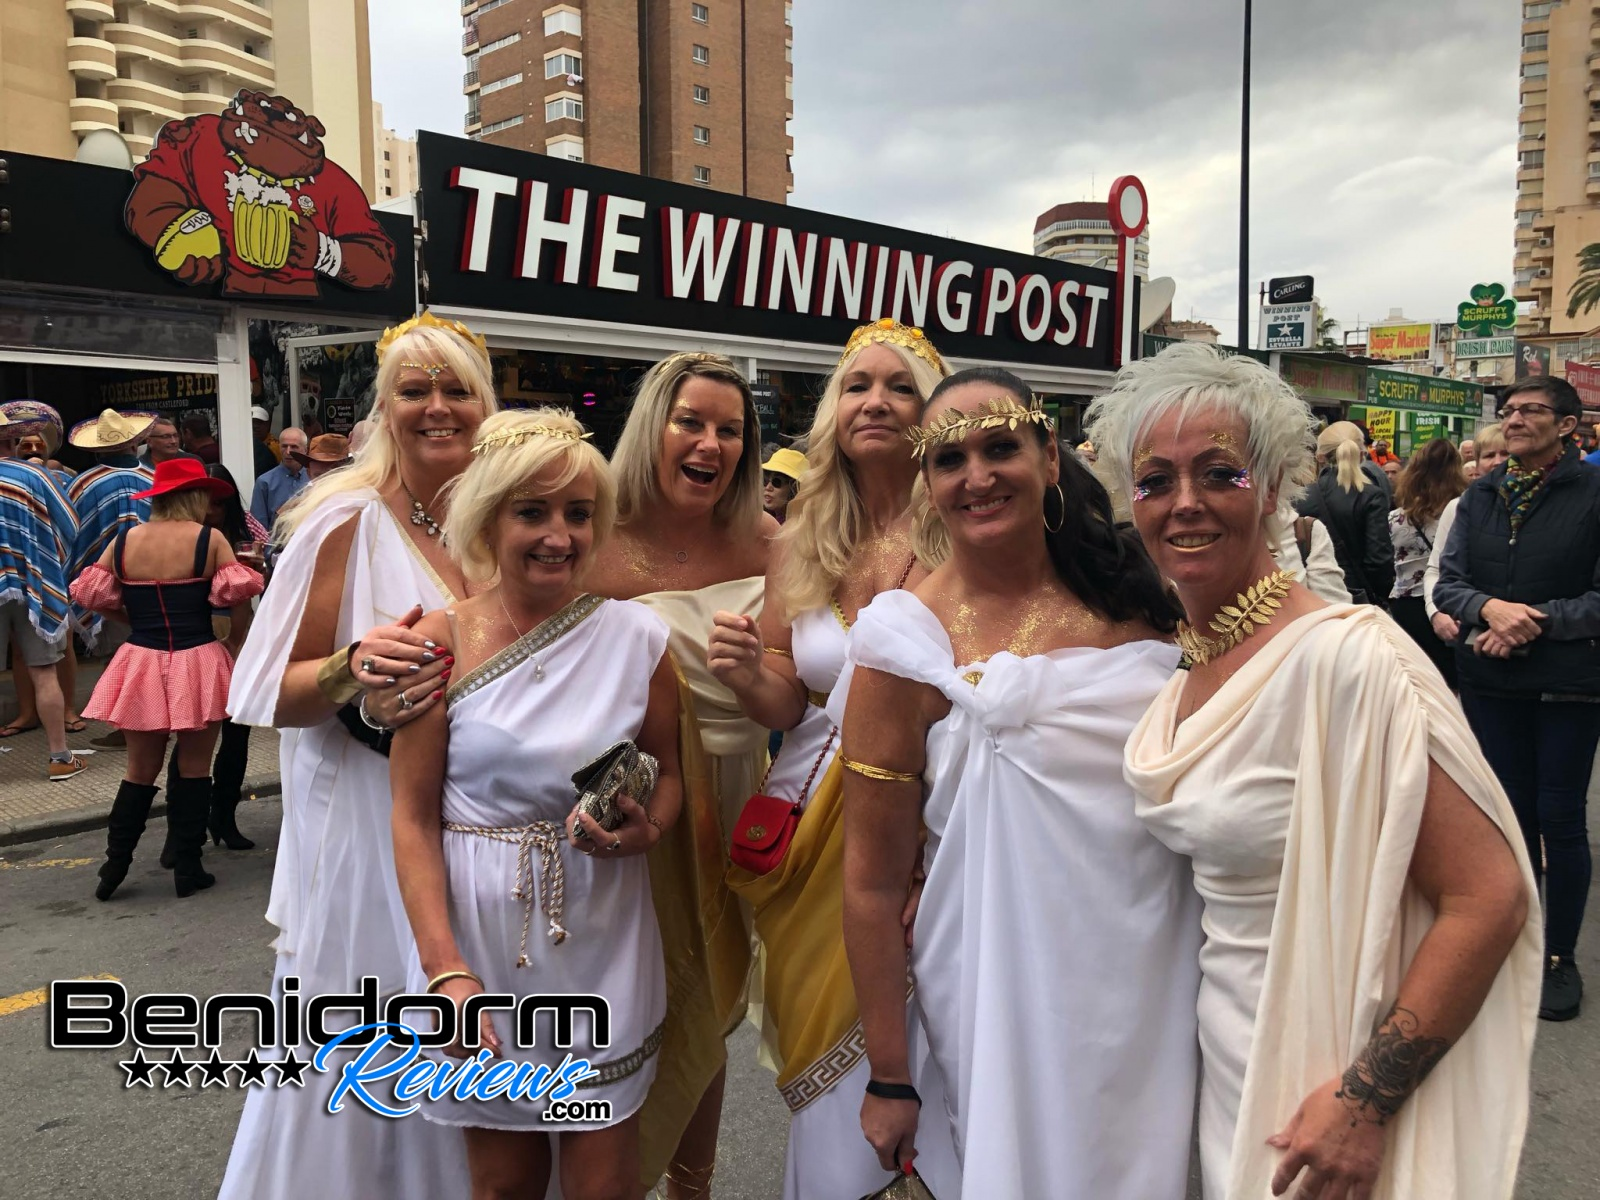 Benidorm-Fiestas-2019-Fancy-Dress-265